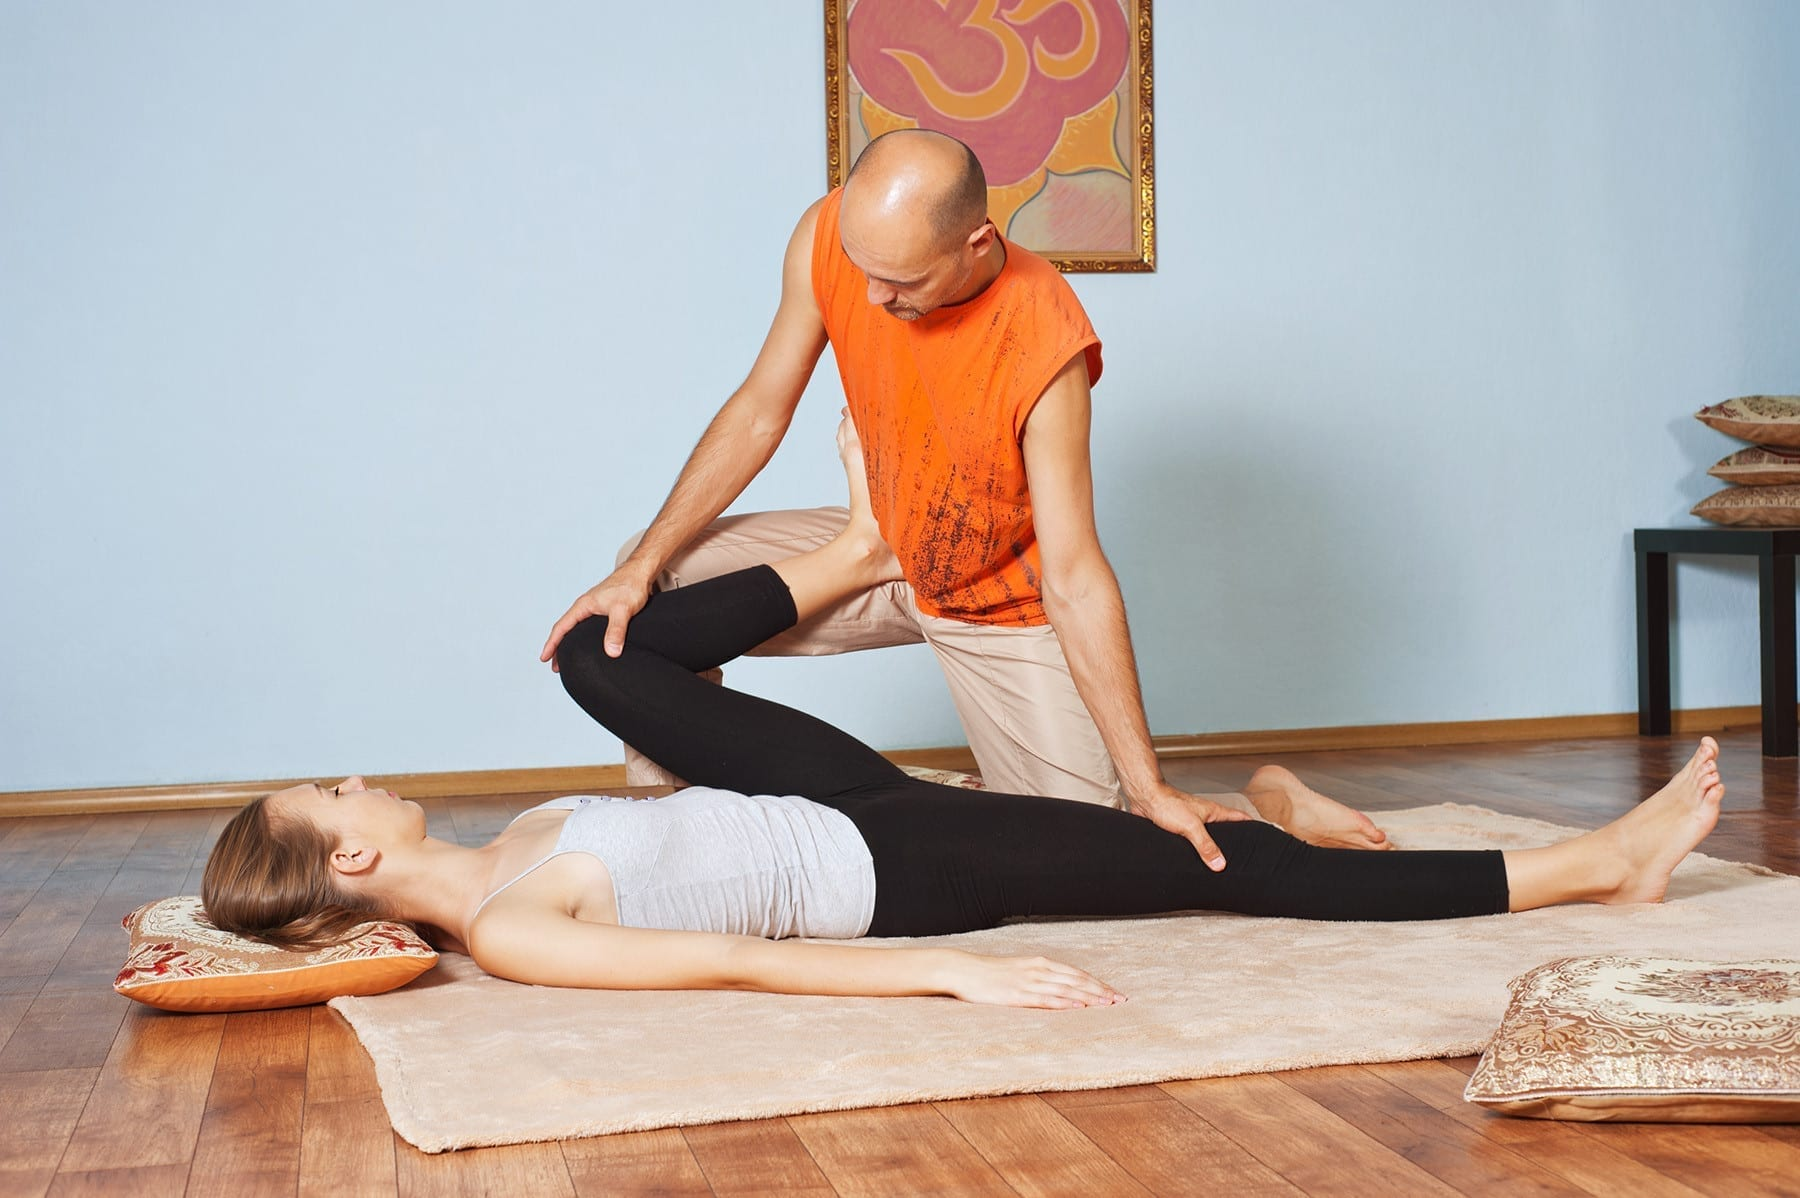 Table Thai Massage vs. Floor Thai Massage: You're Asking the Wrong Question